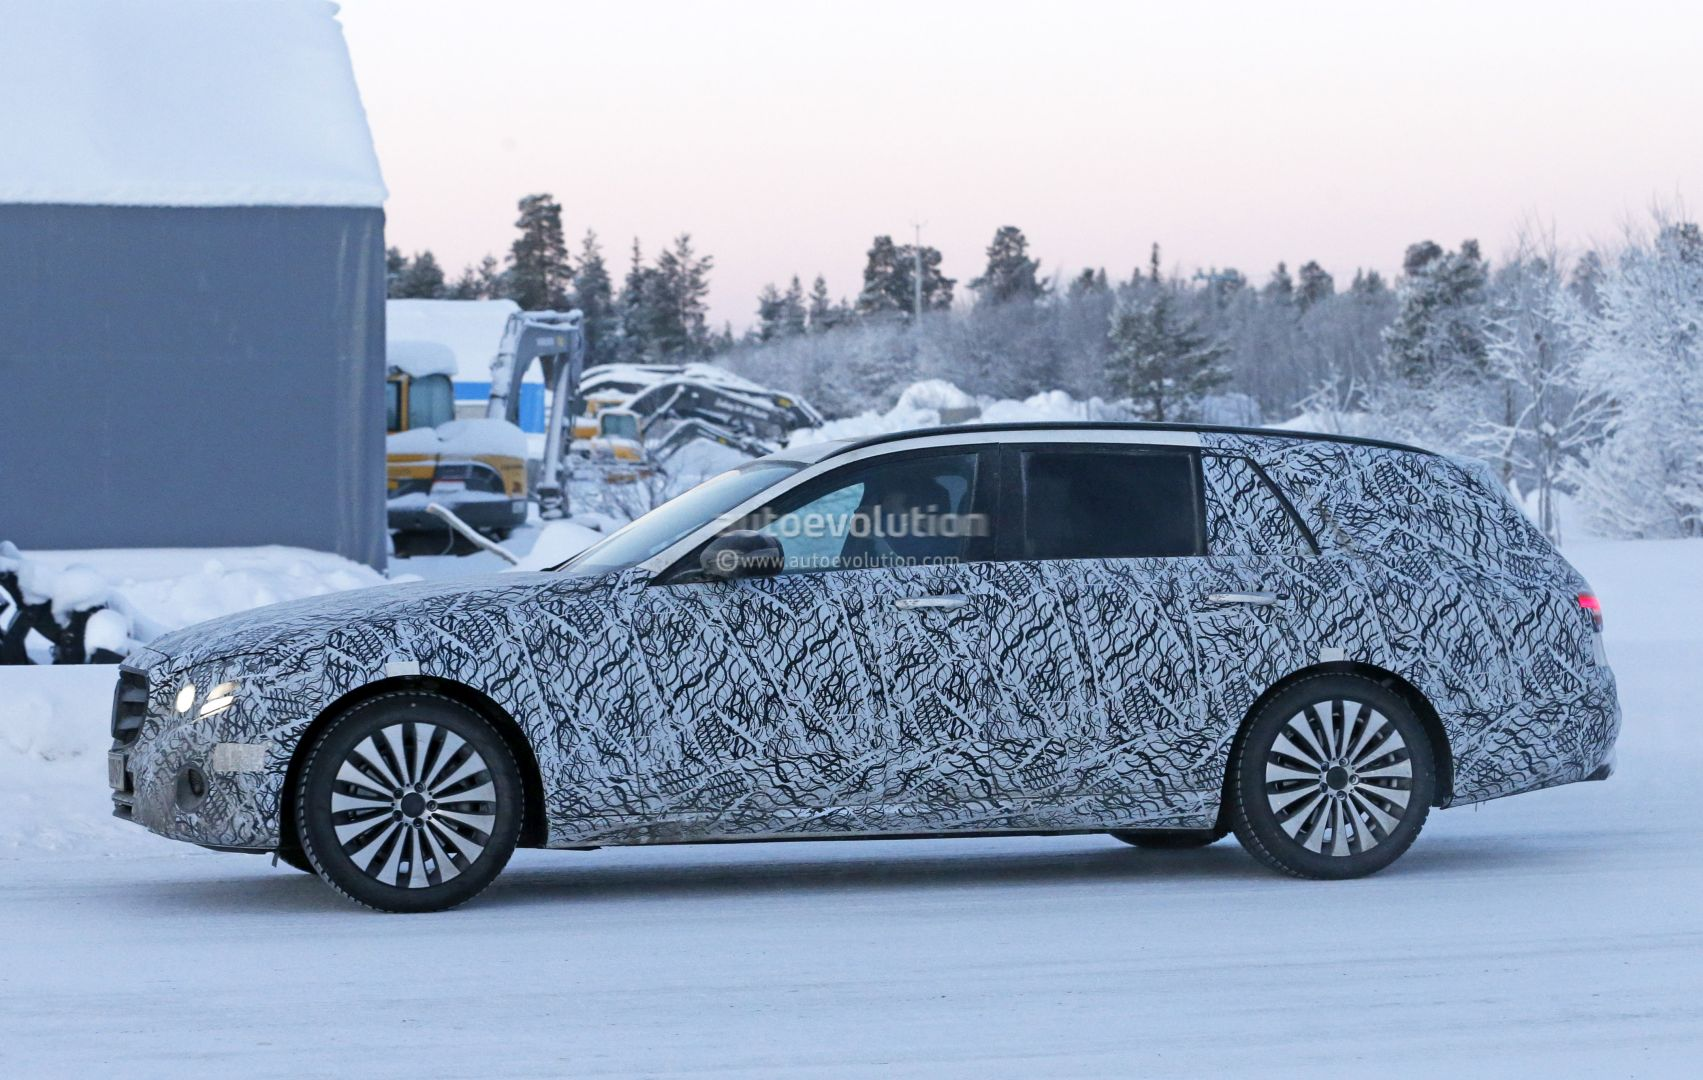 New Mercedes E Class Wagon Spied All Terrain Jacked Up